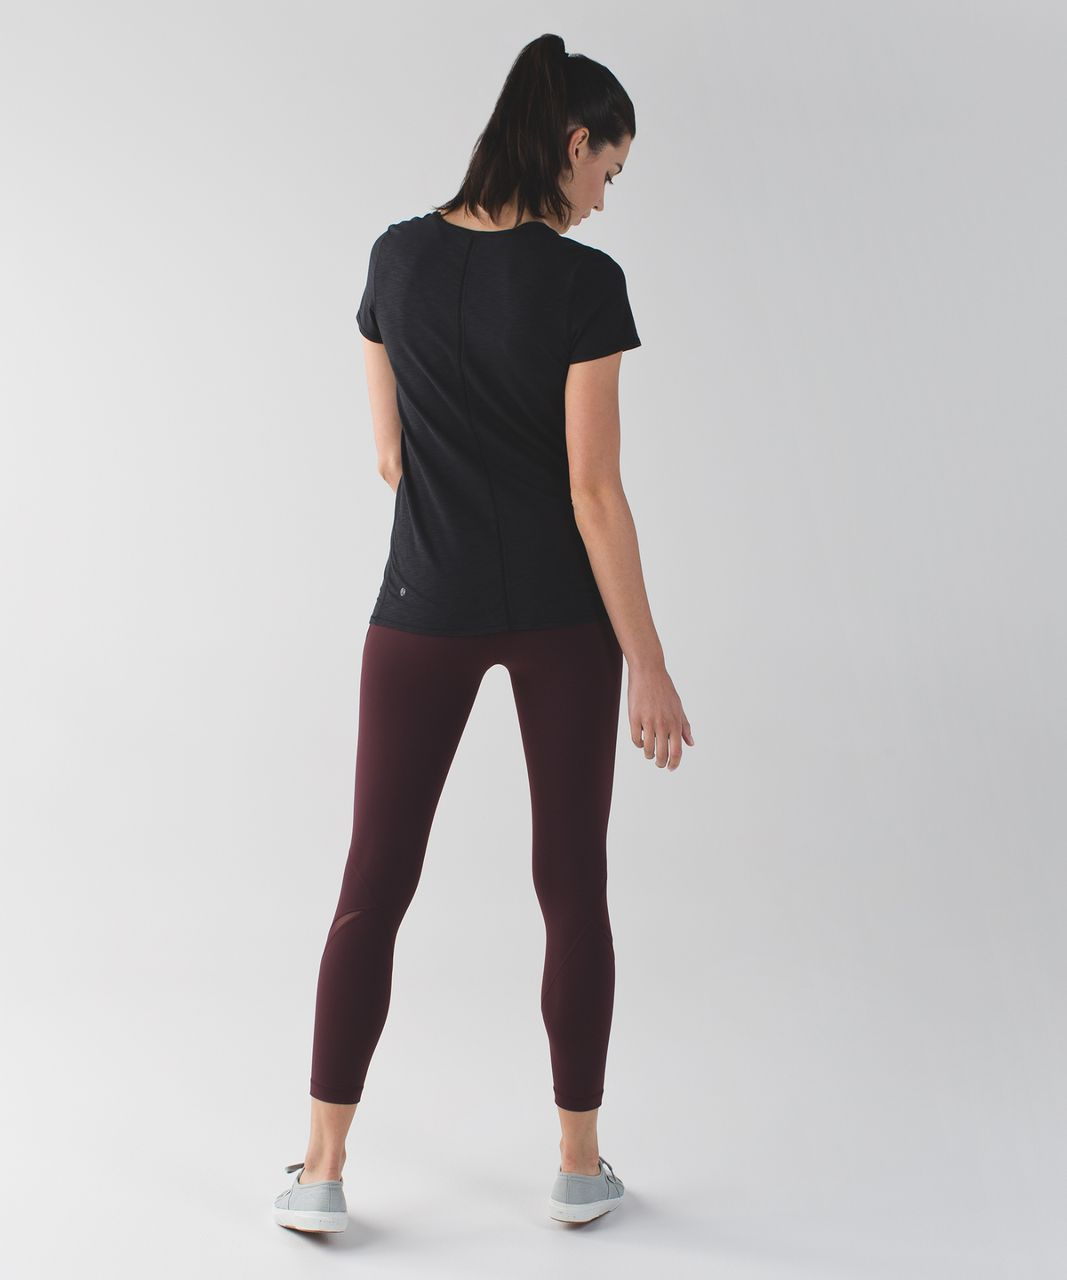 Lululemon High Times Pant (Wrap Mesh) - Bordeaux Drama